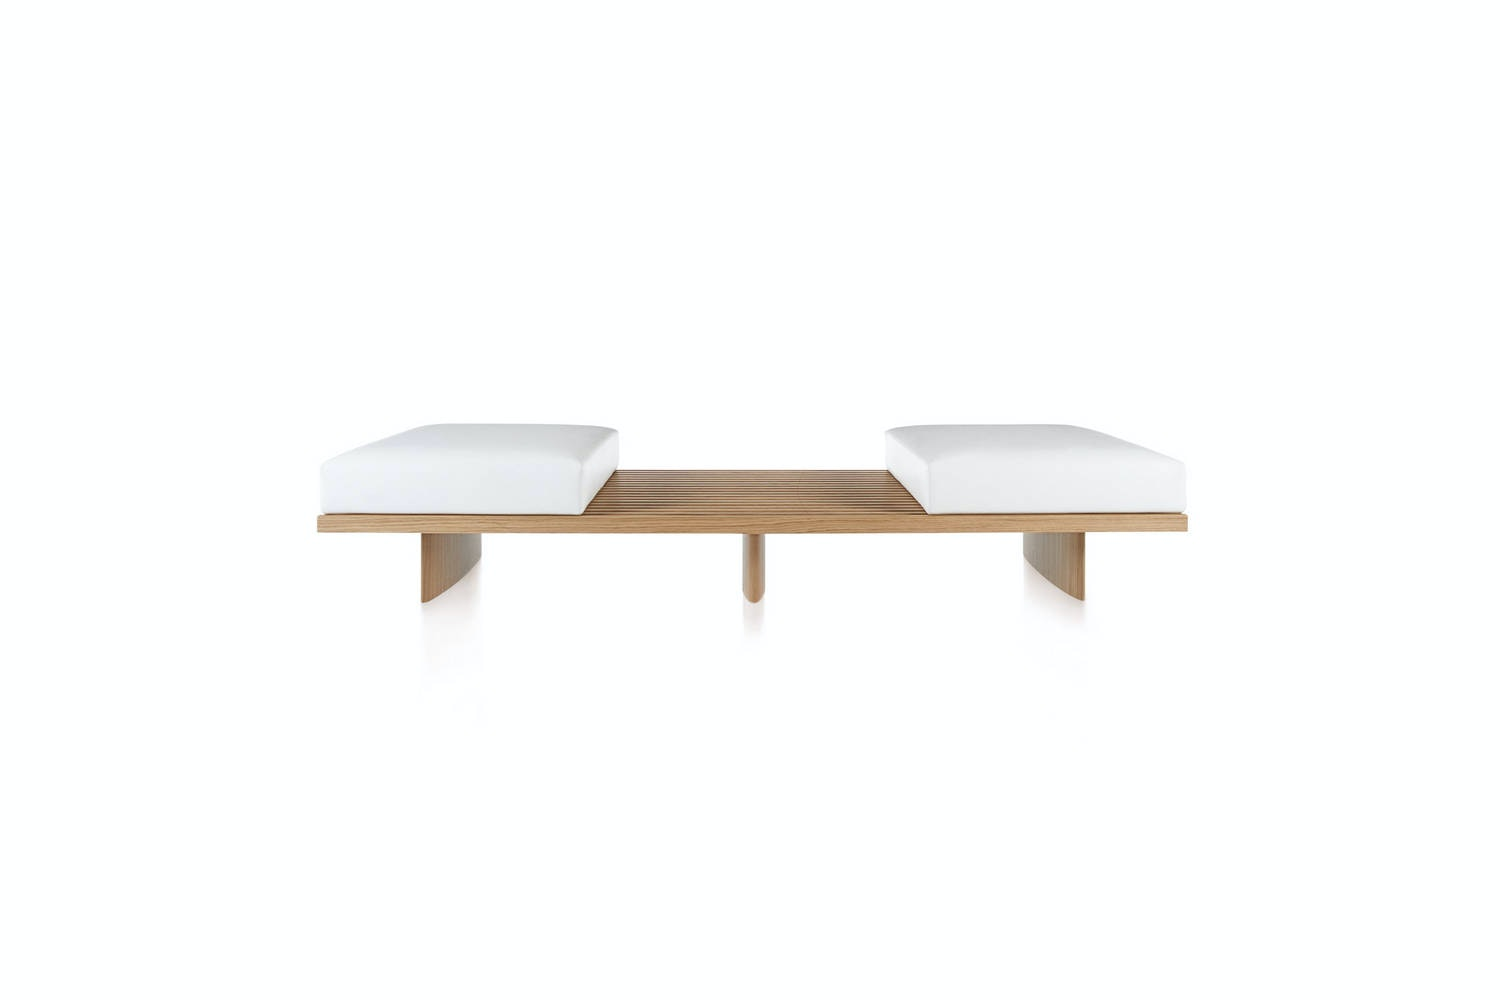 514 Refolo Bench by Charlotte Perriand for Cassina